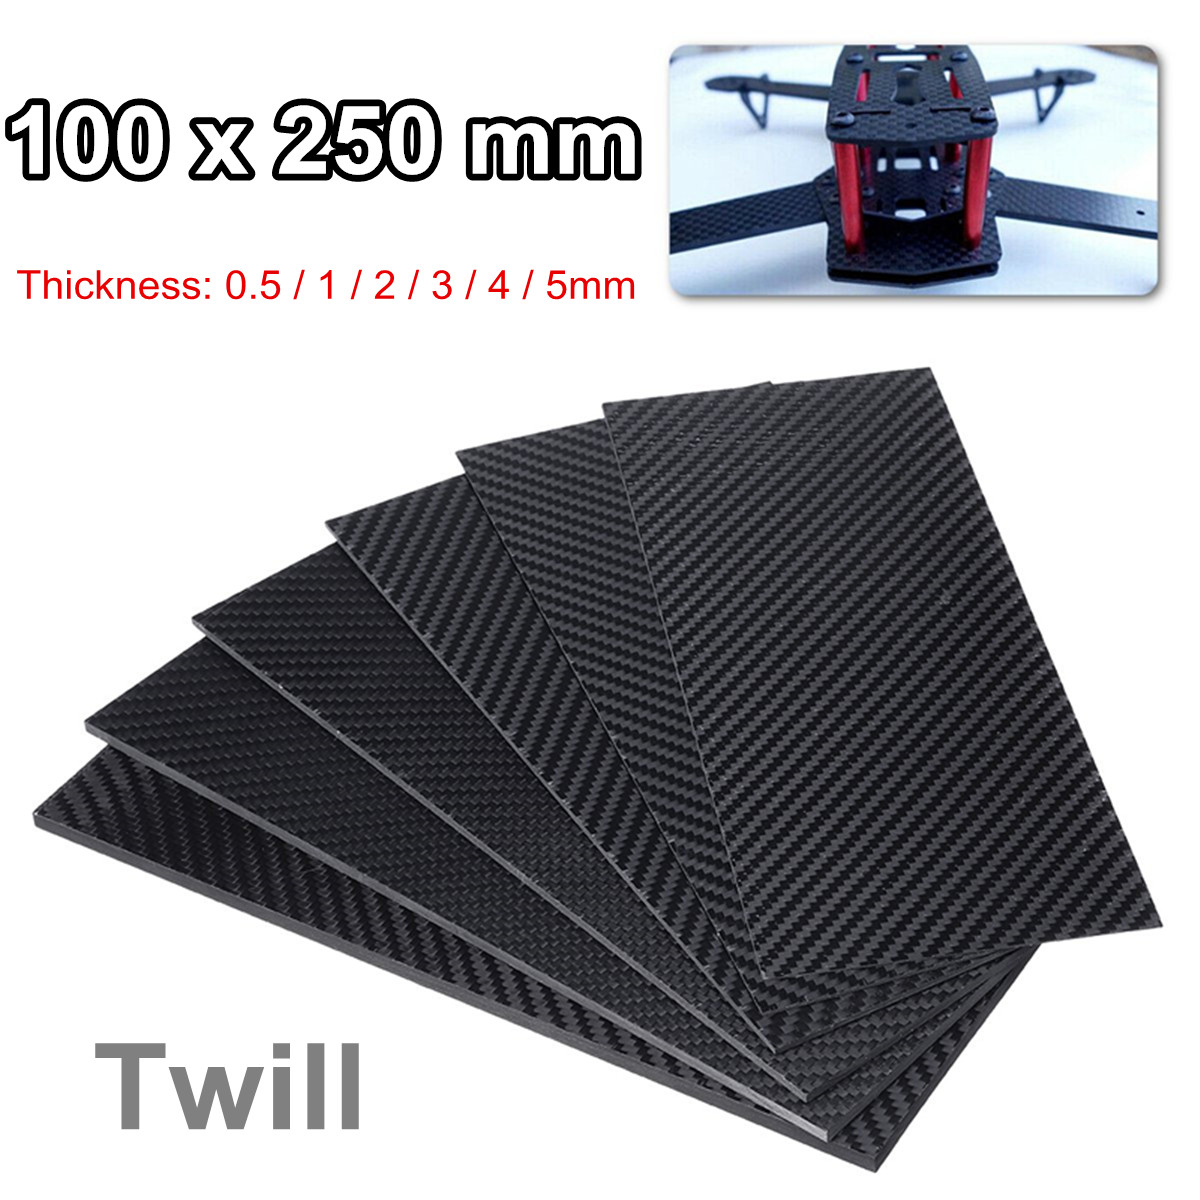 0.5-5MM 3K Matte Surface Twill Carbon Plate Panel Sheets High Composite Hardness Material Anti-UV Carbon Fiber Board 100X250 mm0.5-5MM 3K Matte Surface Twill Carbon Plate Panel Sheets High Composite Hardness Material Anti-UV Carbon Fiber Board 100X250 mm